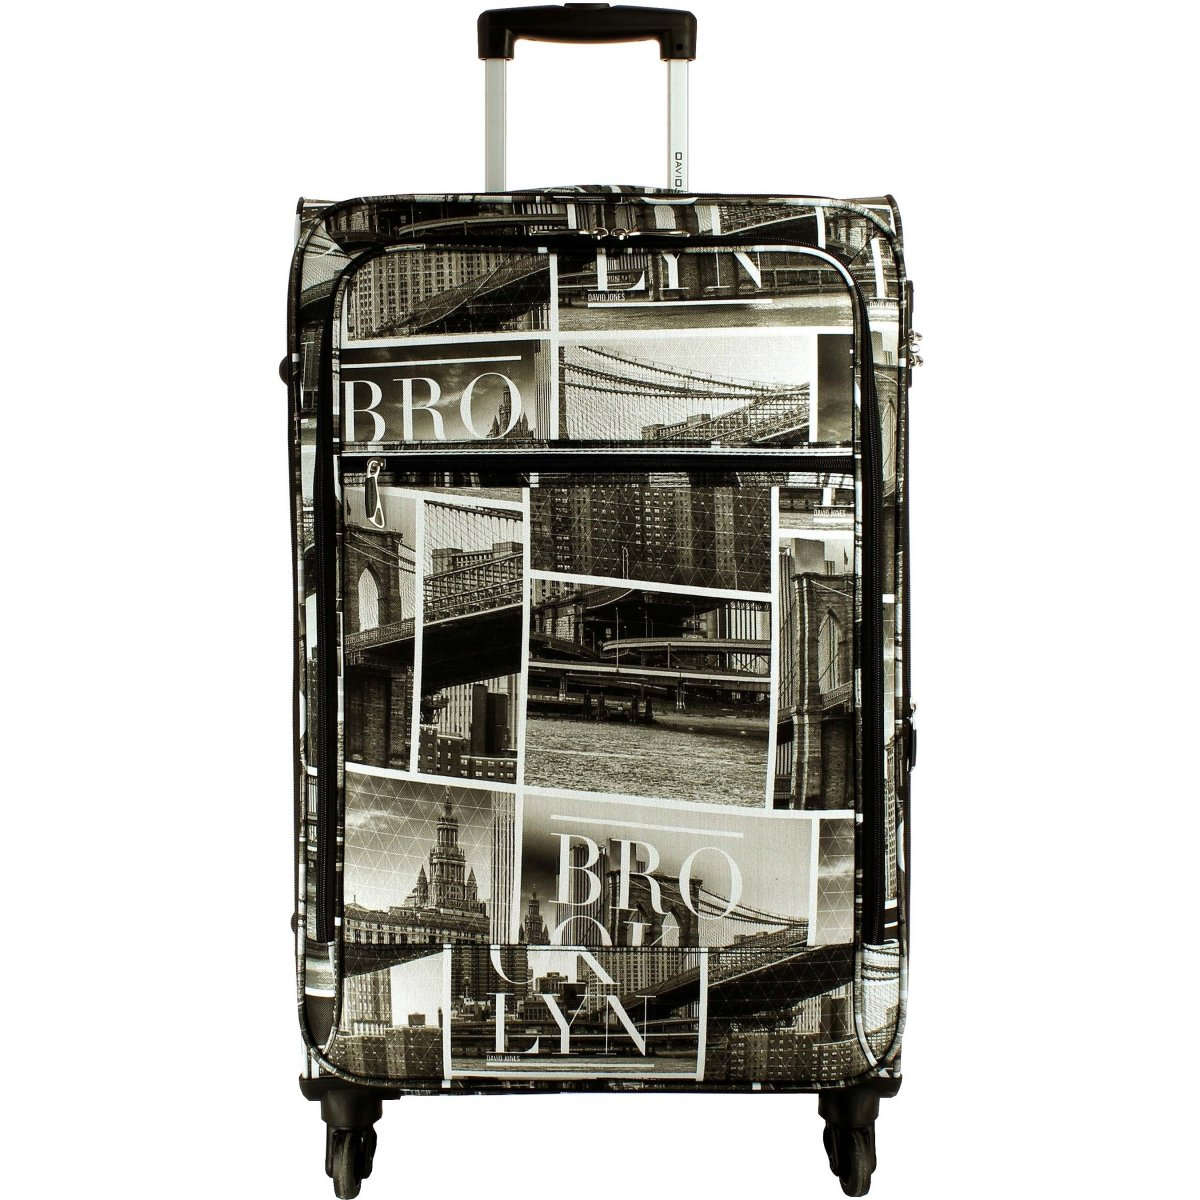 valise souple david jones taille m 66cm ba50271m couleur principale brooklyn solde. Black Bedroom Furniture Sets. Home Design Ideas